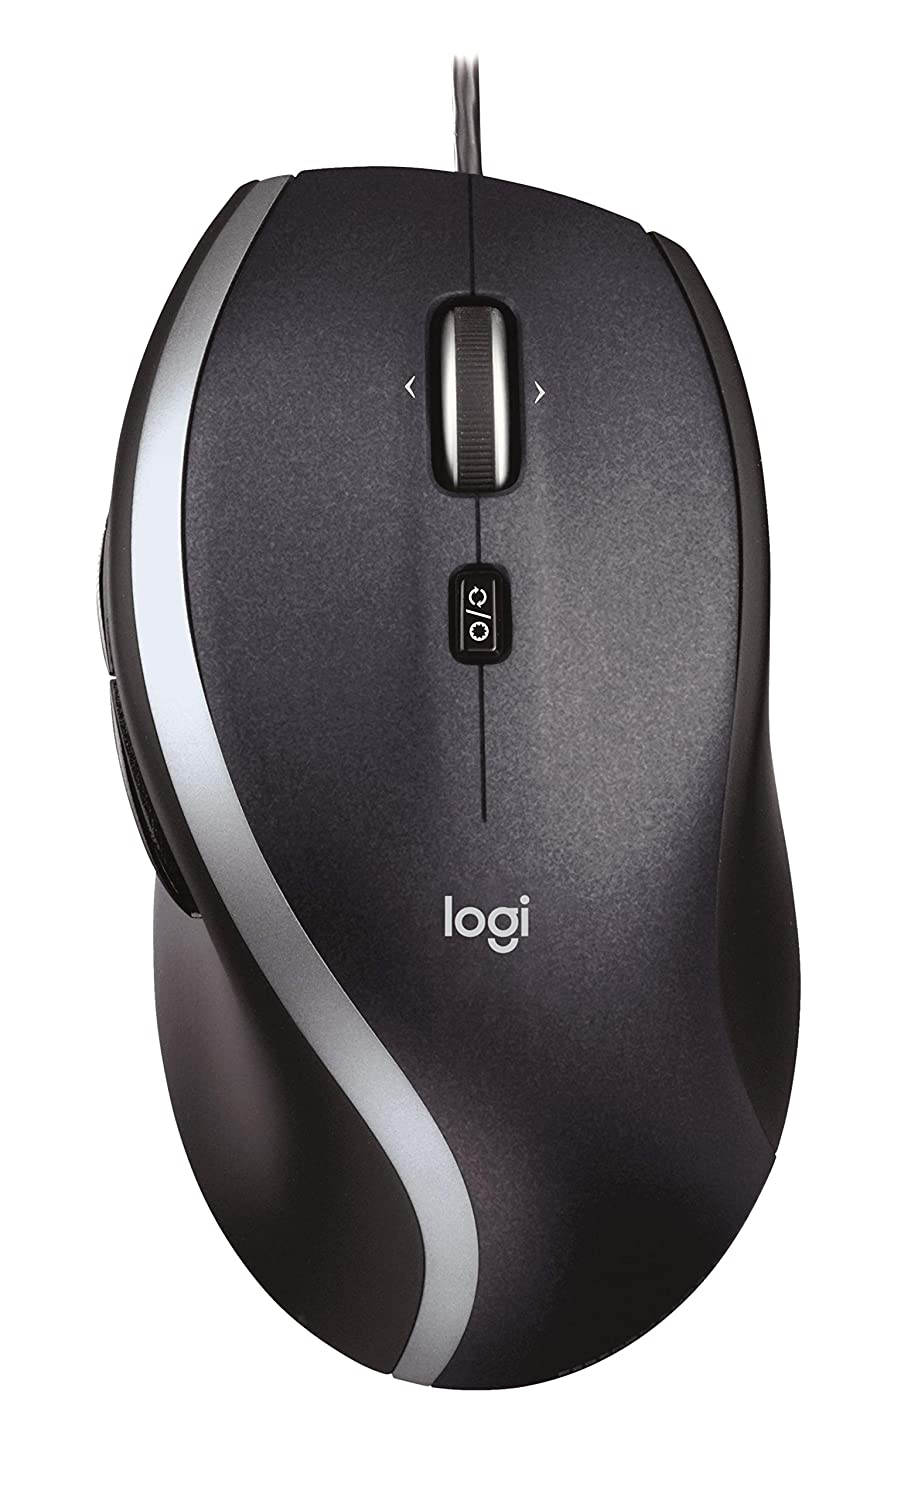 LOGITECH N231 MOUSE DRIVERS FOR WINDOWS 8